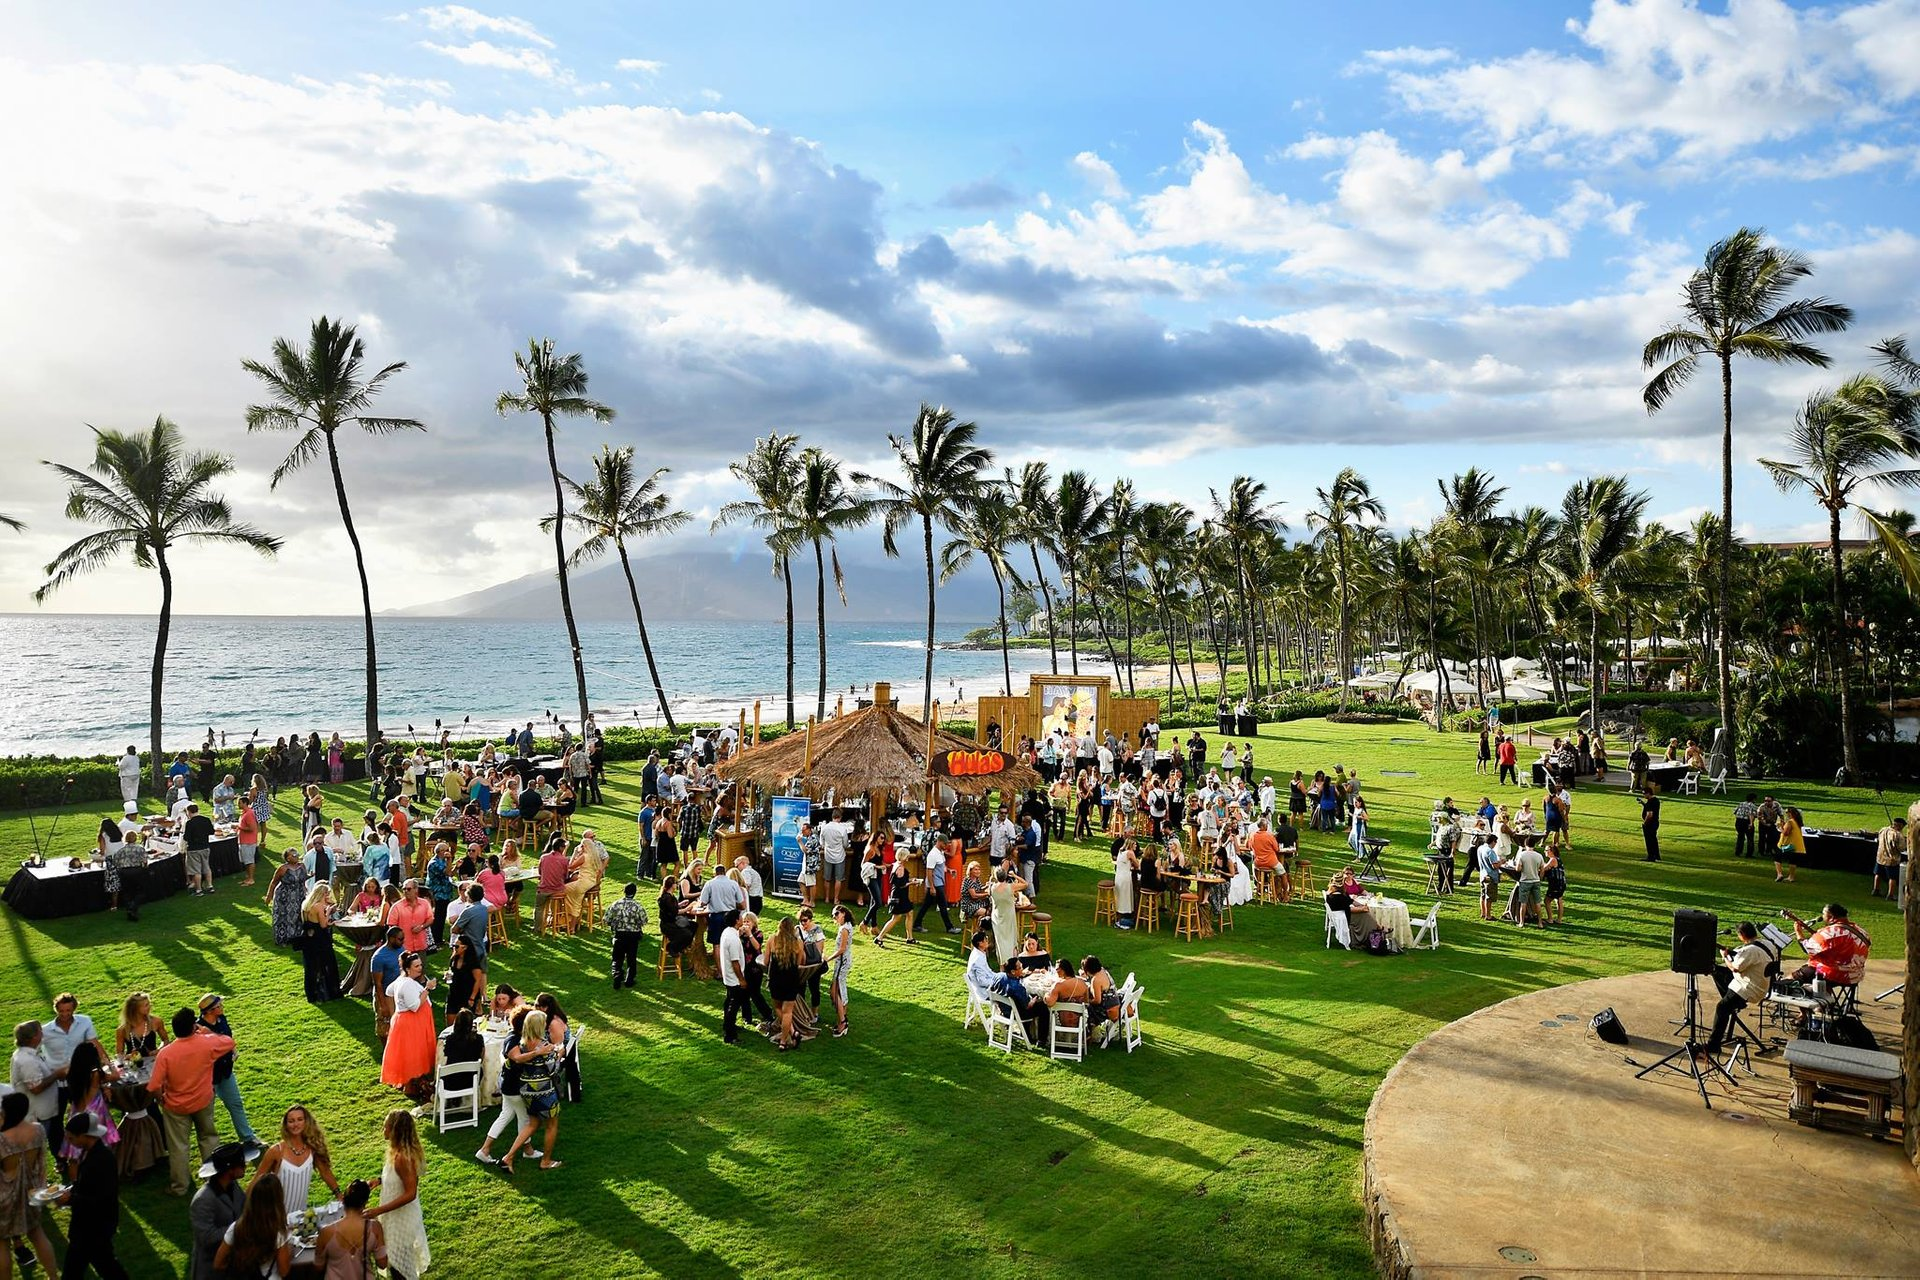 Best time for Maui Film Festival in Hawaii 2019